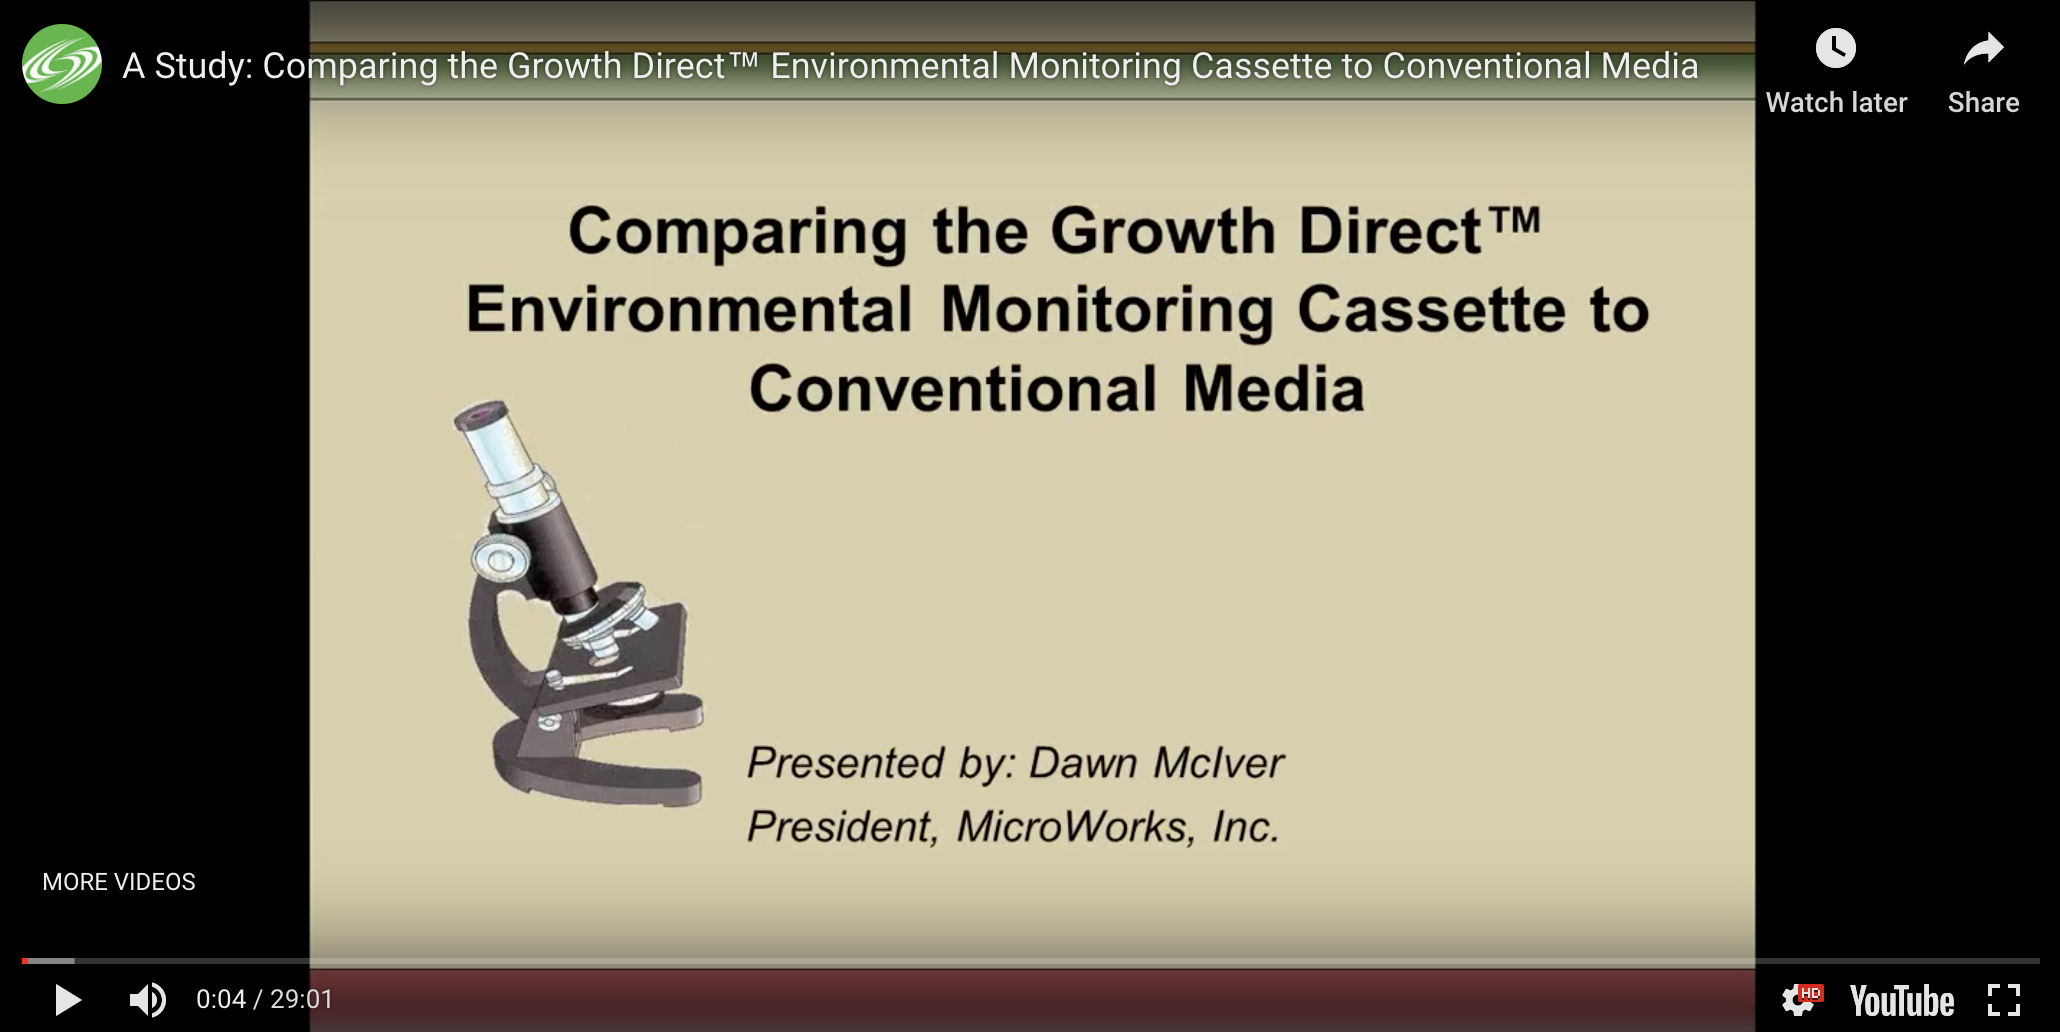 Comparing the Growth Direct Environmental Monitoring Cassette to Conventional Media